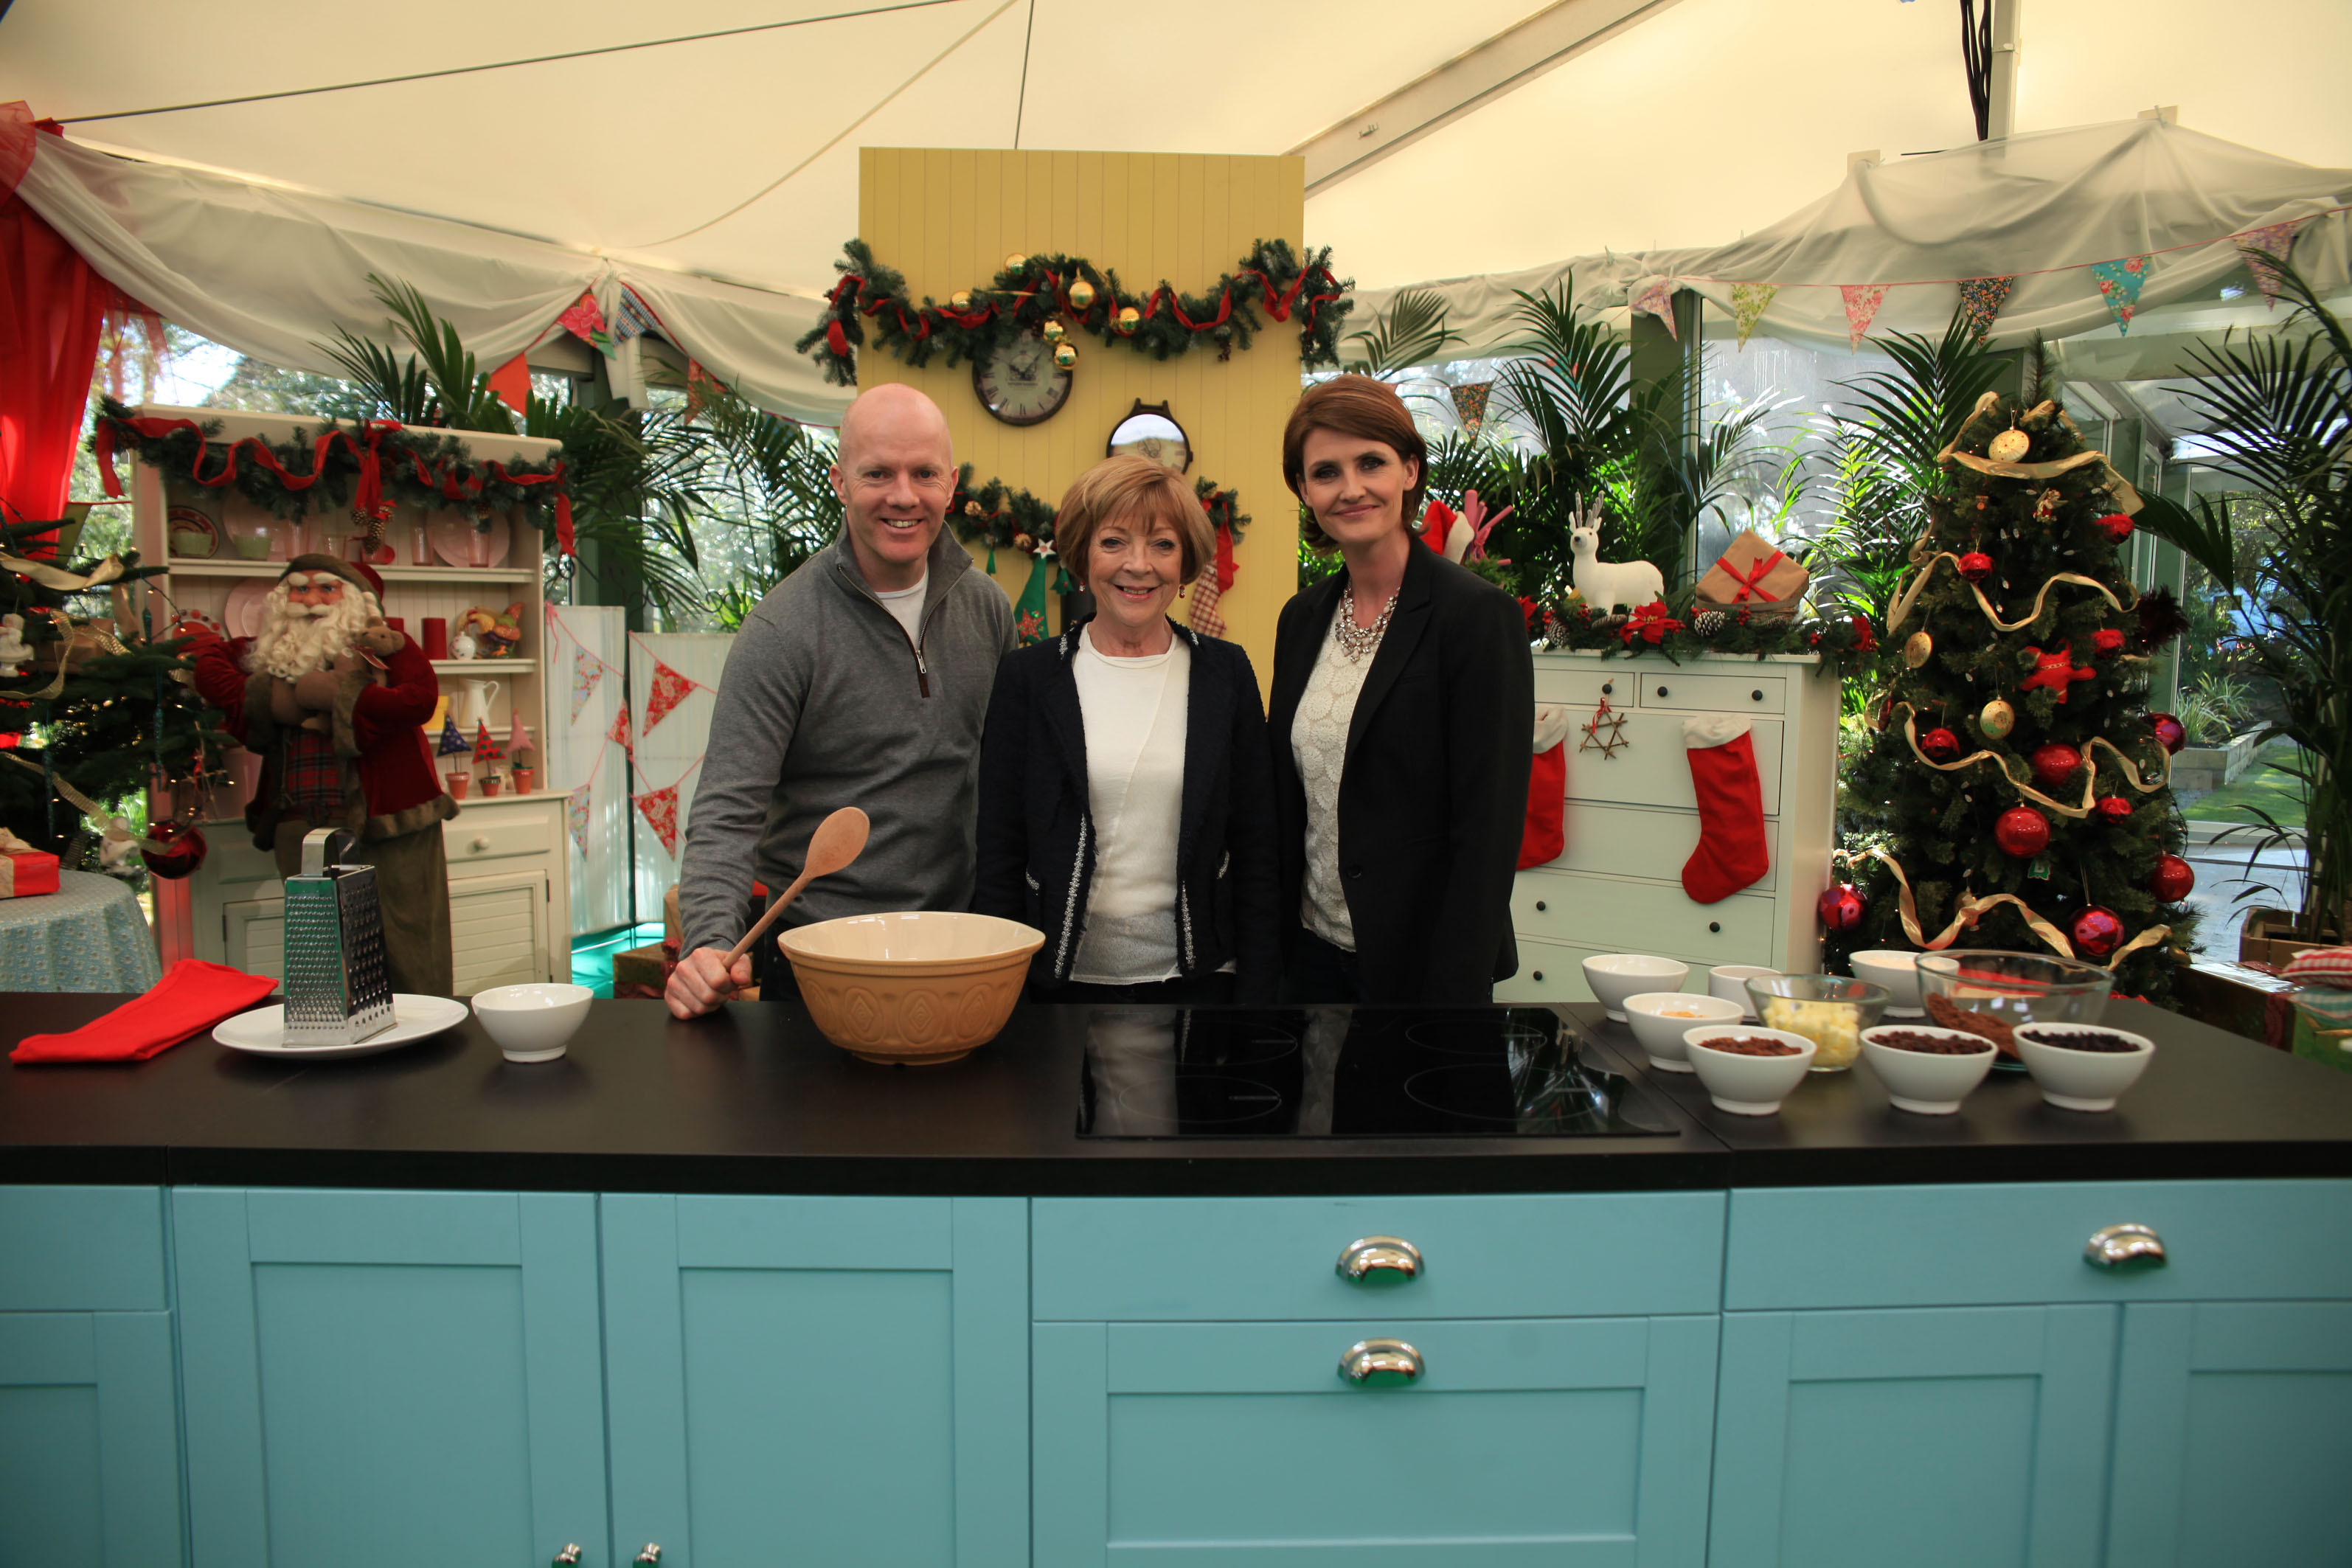 Get ready for spectacular festive baking in TV3's 'The Great Irish Christmas Bake Off'.